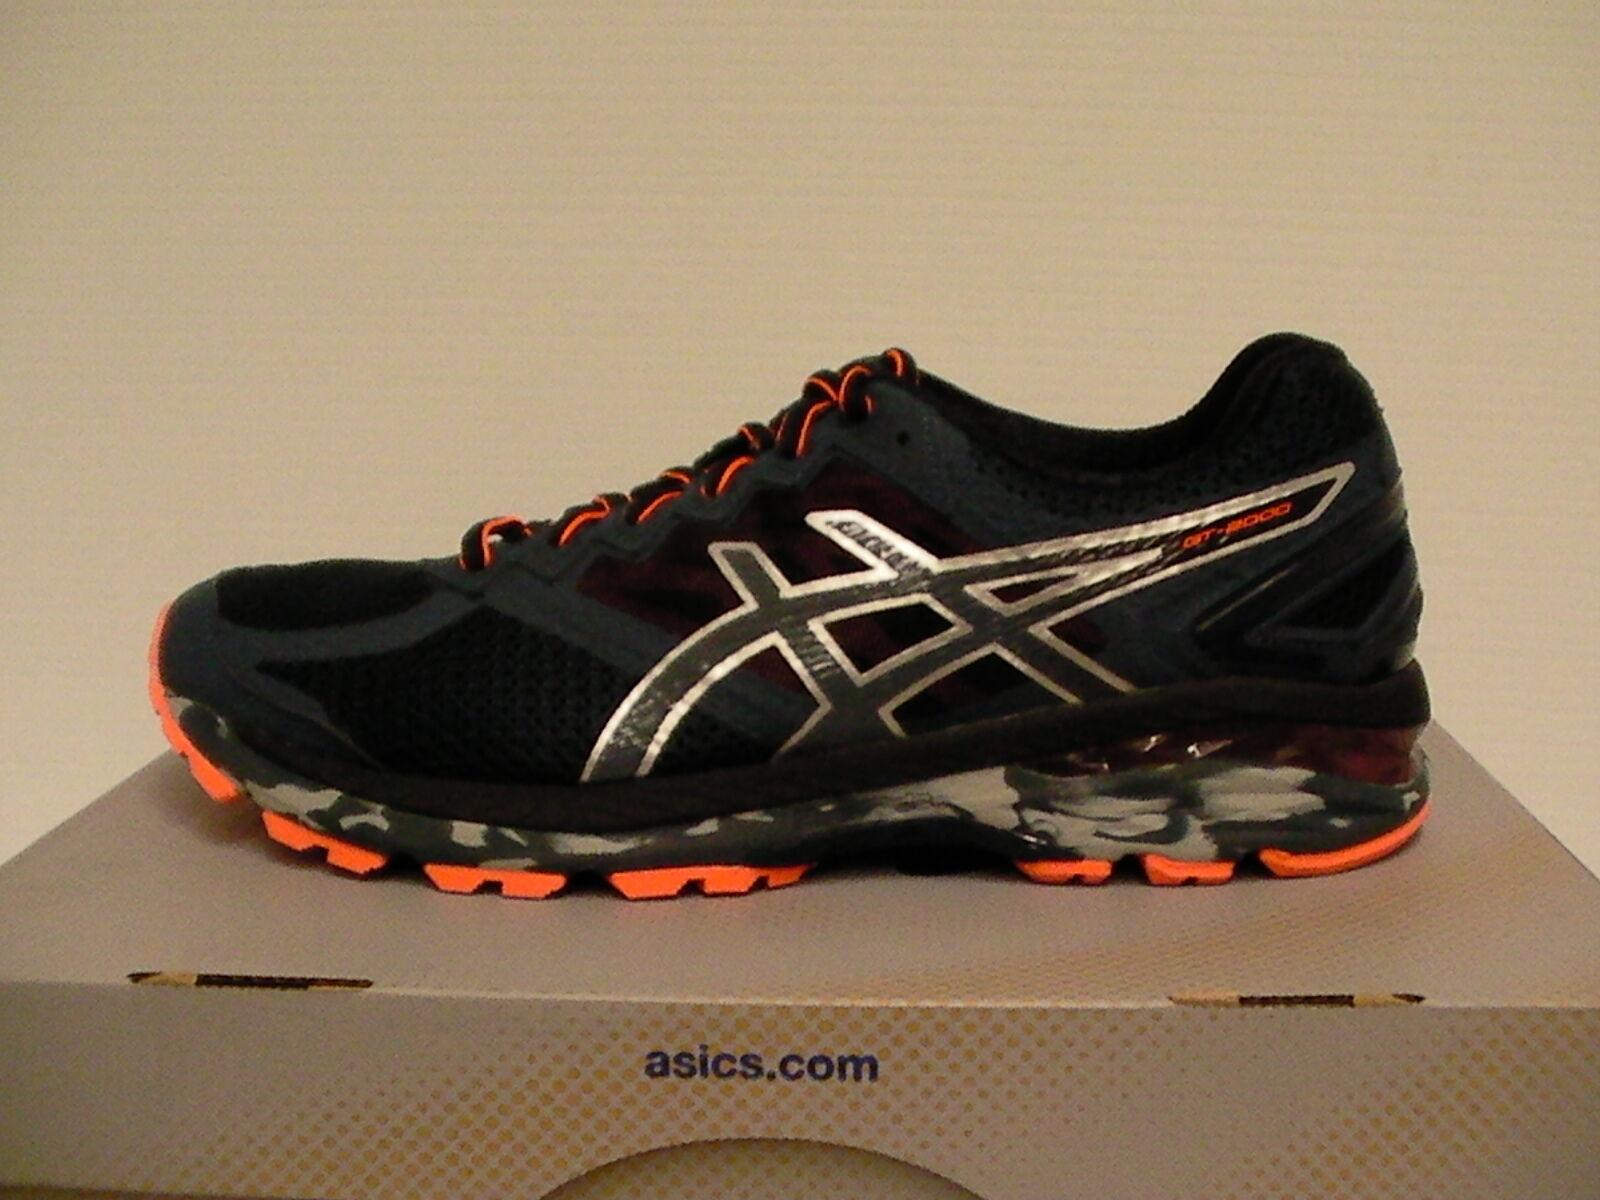 Asics men training running shoes gel GT 2000 4Trail size 7.5 us new with box